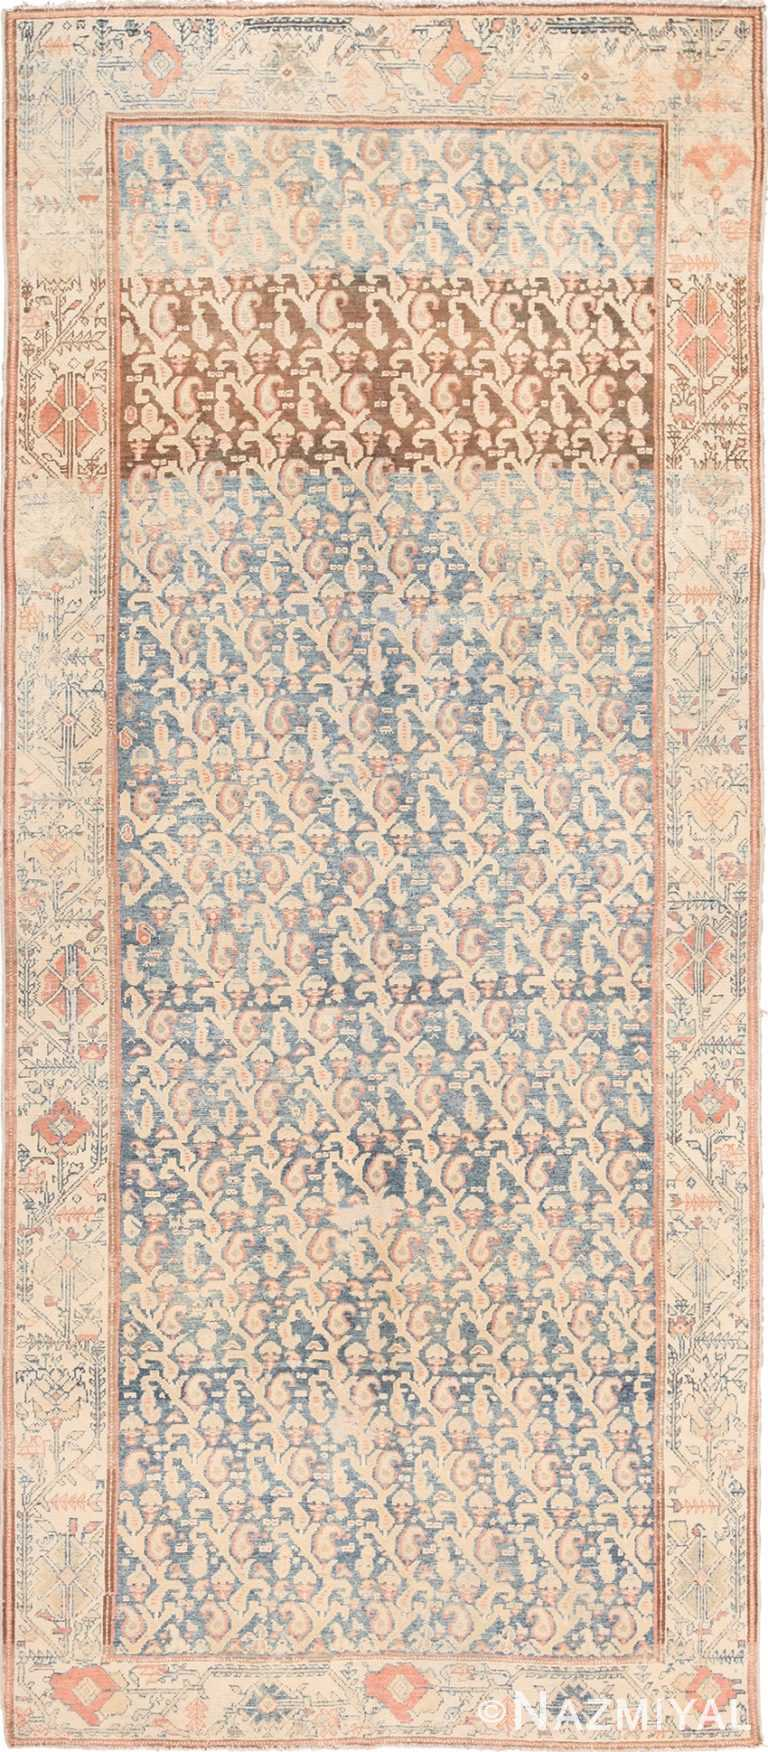 antique room size malayer persian rug 49651 Nazmiyal